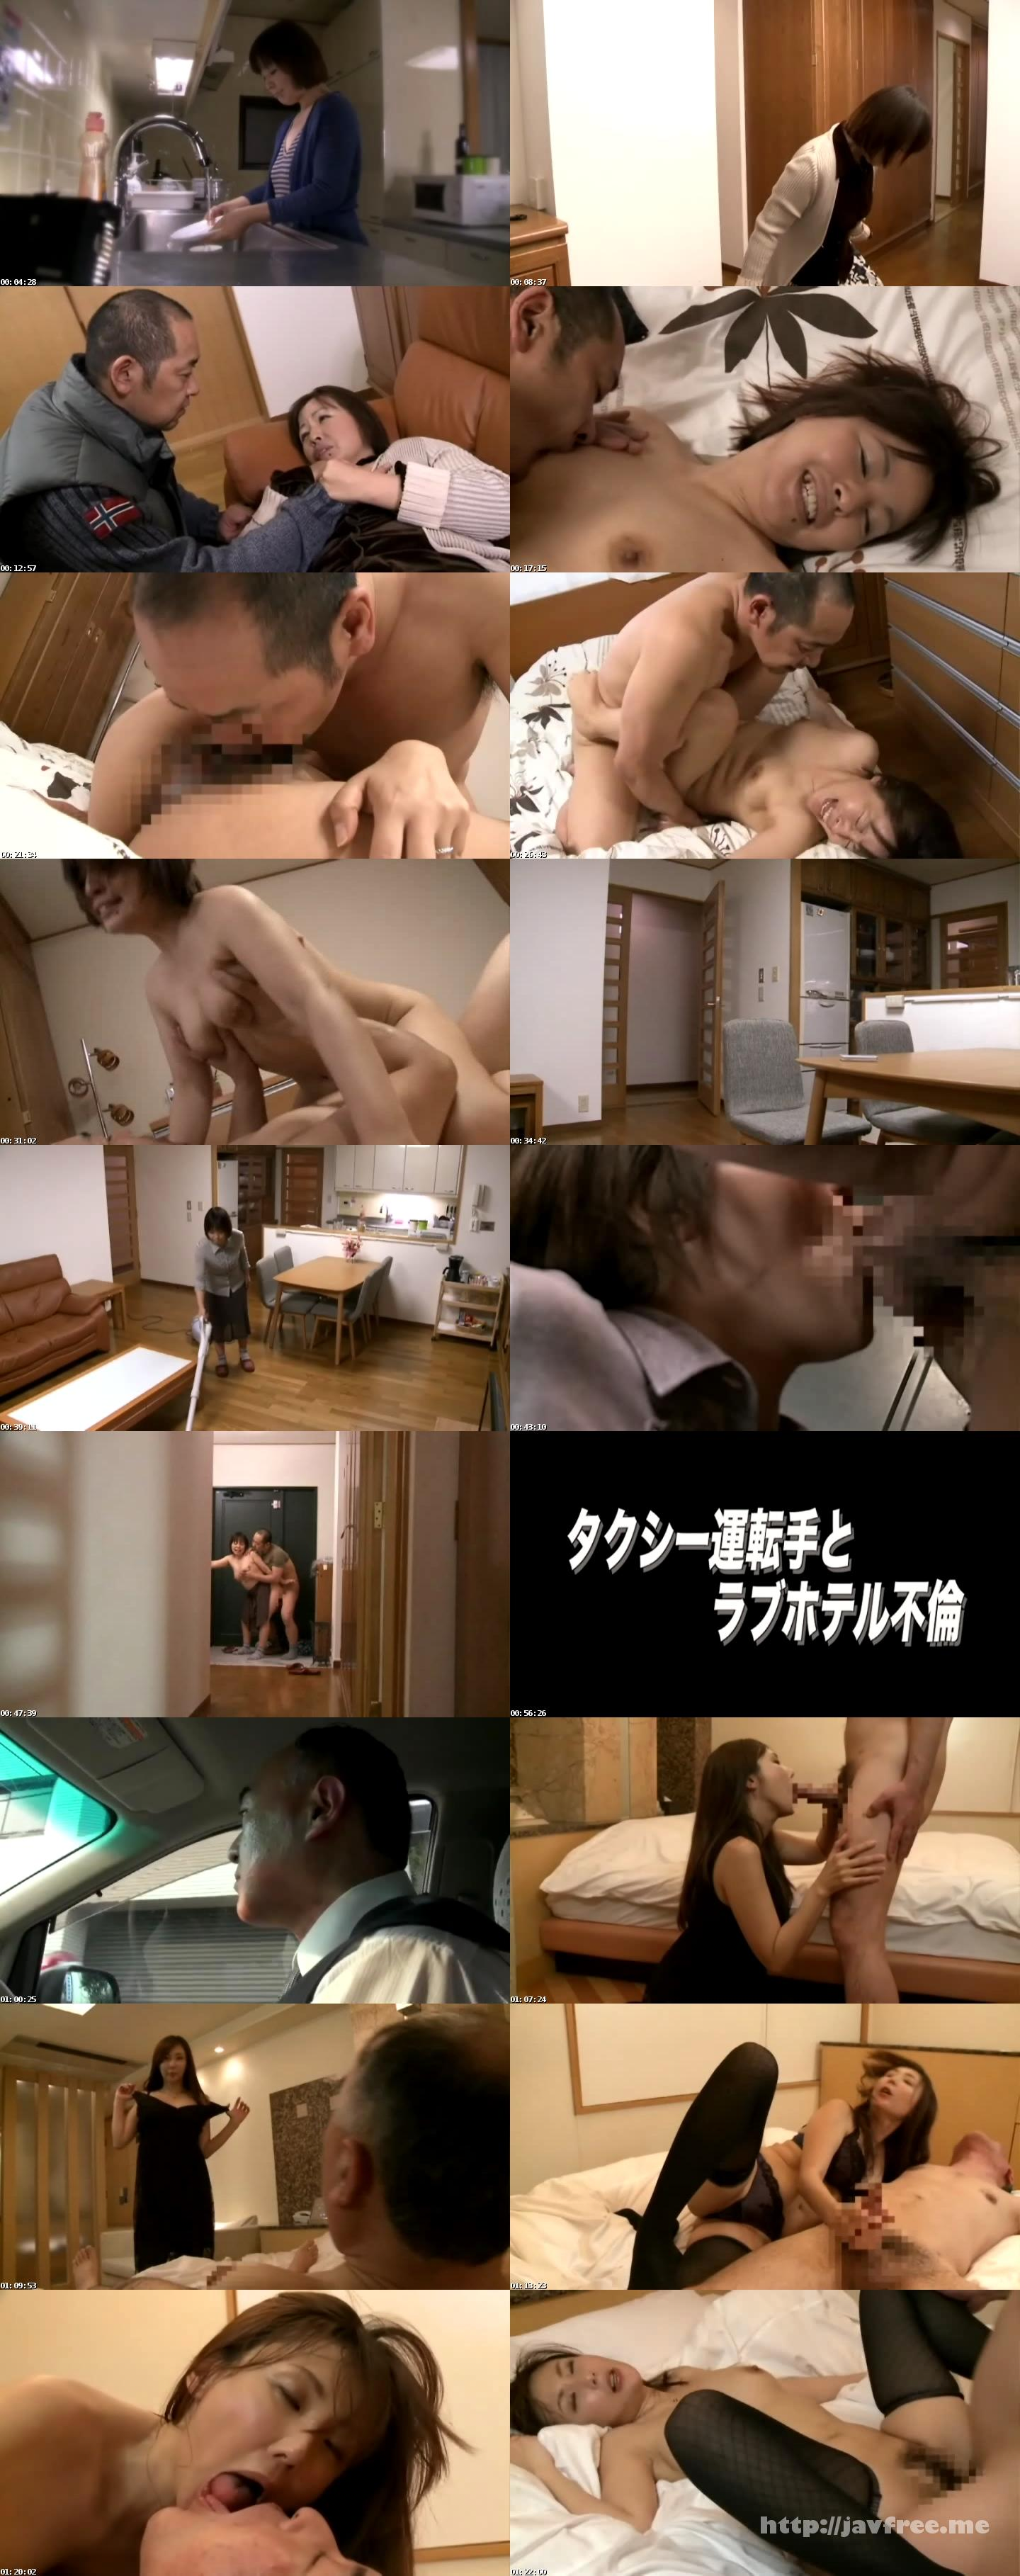 [AKBS 019] 匂い立つ熟女 クリーニング屋のそそり立つ一物/タクシー運転手とラブホテル不倫 美里愛 山吹瞳 美里愛 星野瞳 星野ひとみ 山吹瞳 AKBS